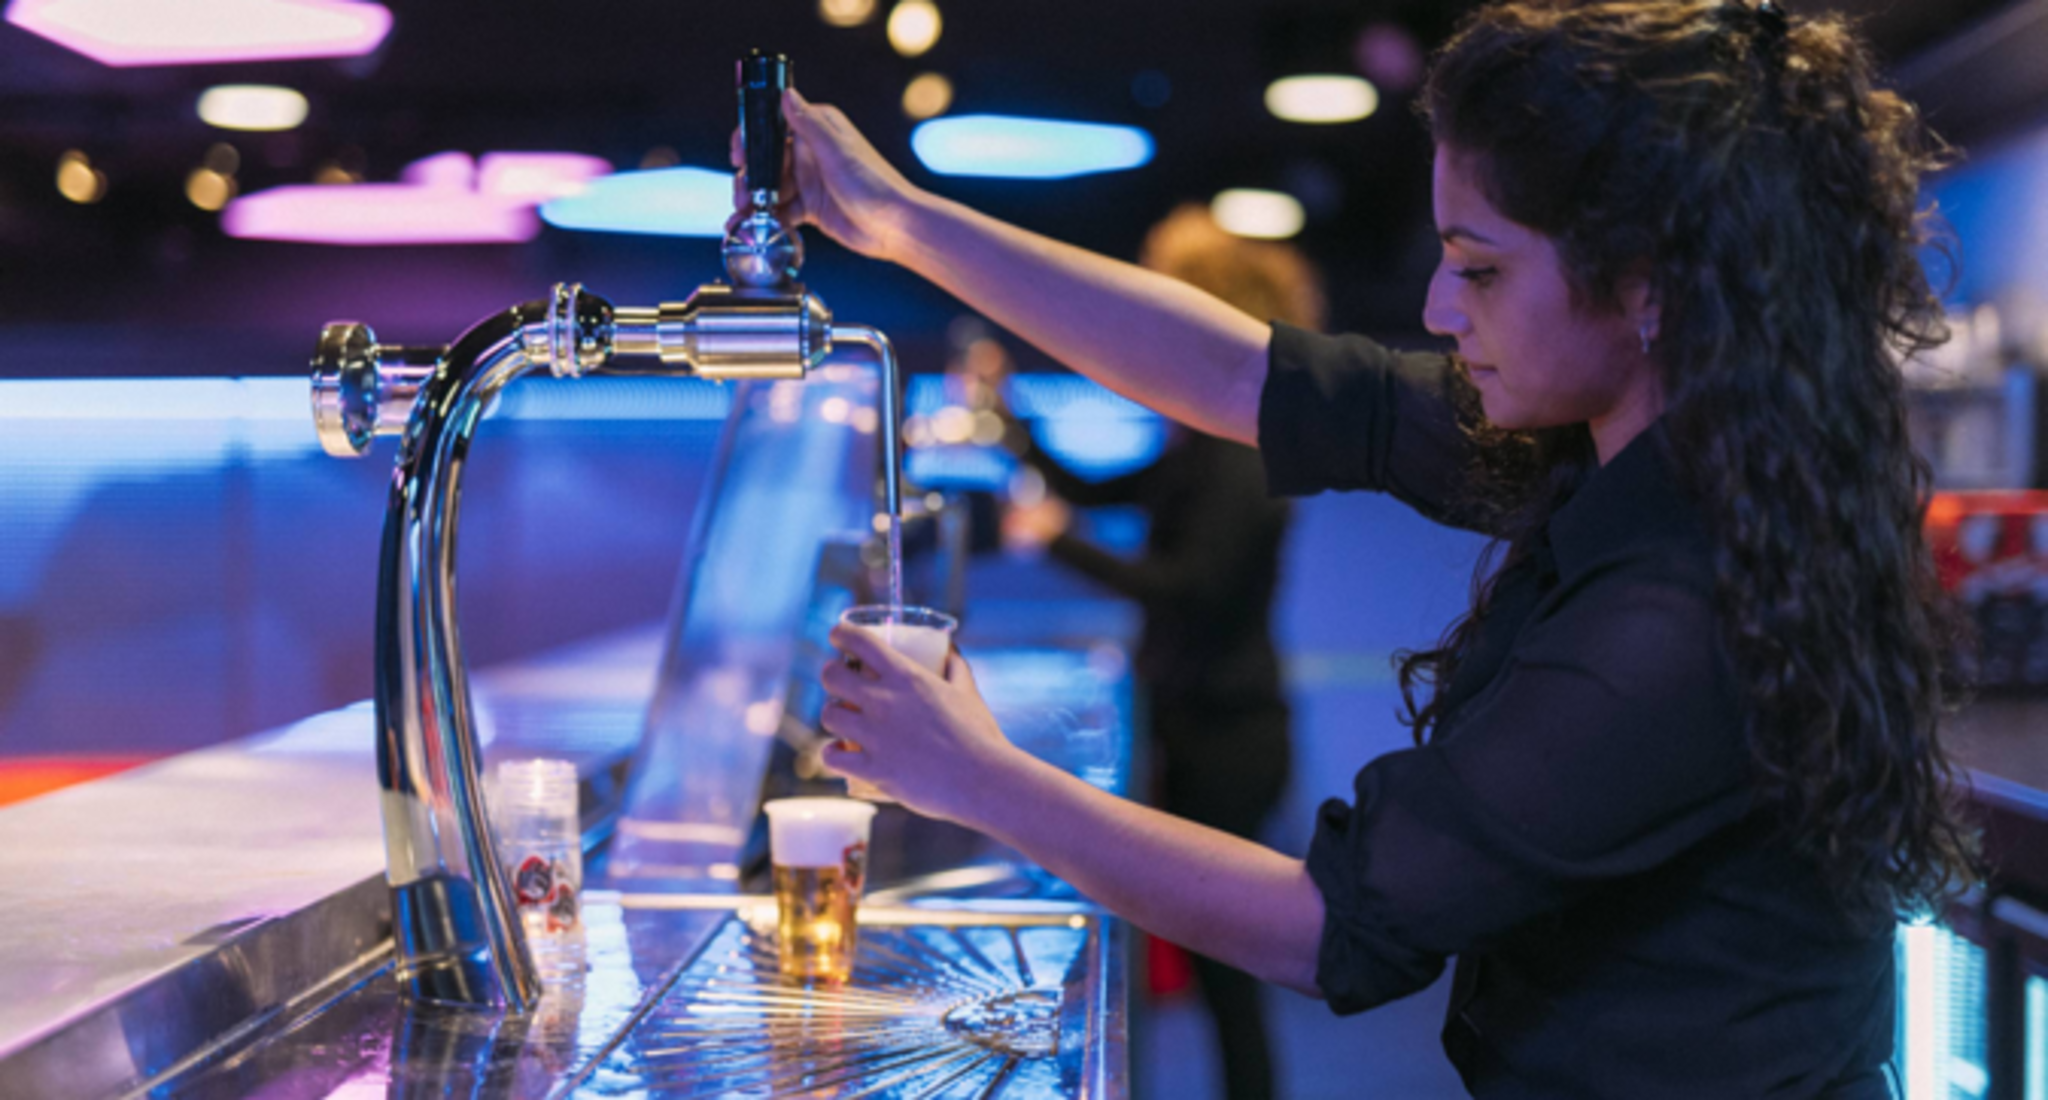 Bartender jobs in Amsterdam